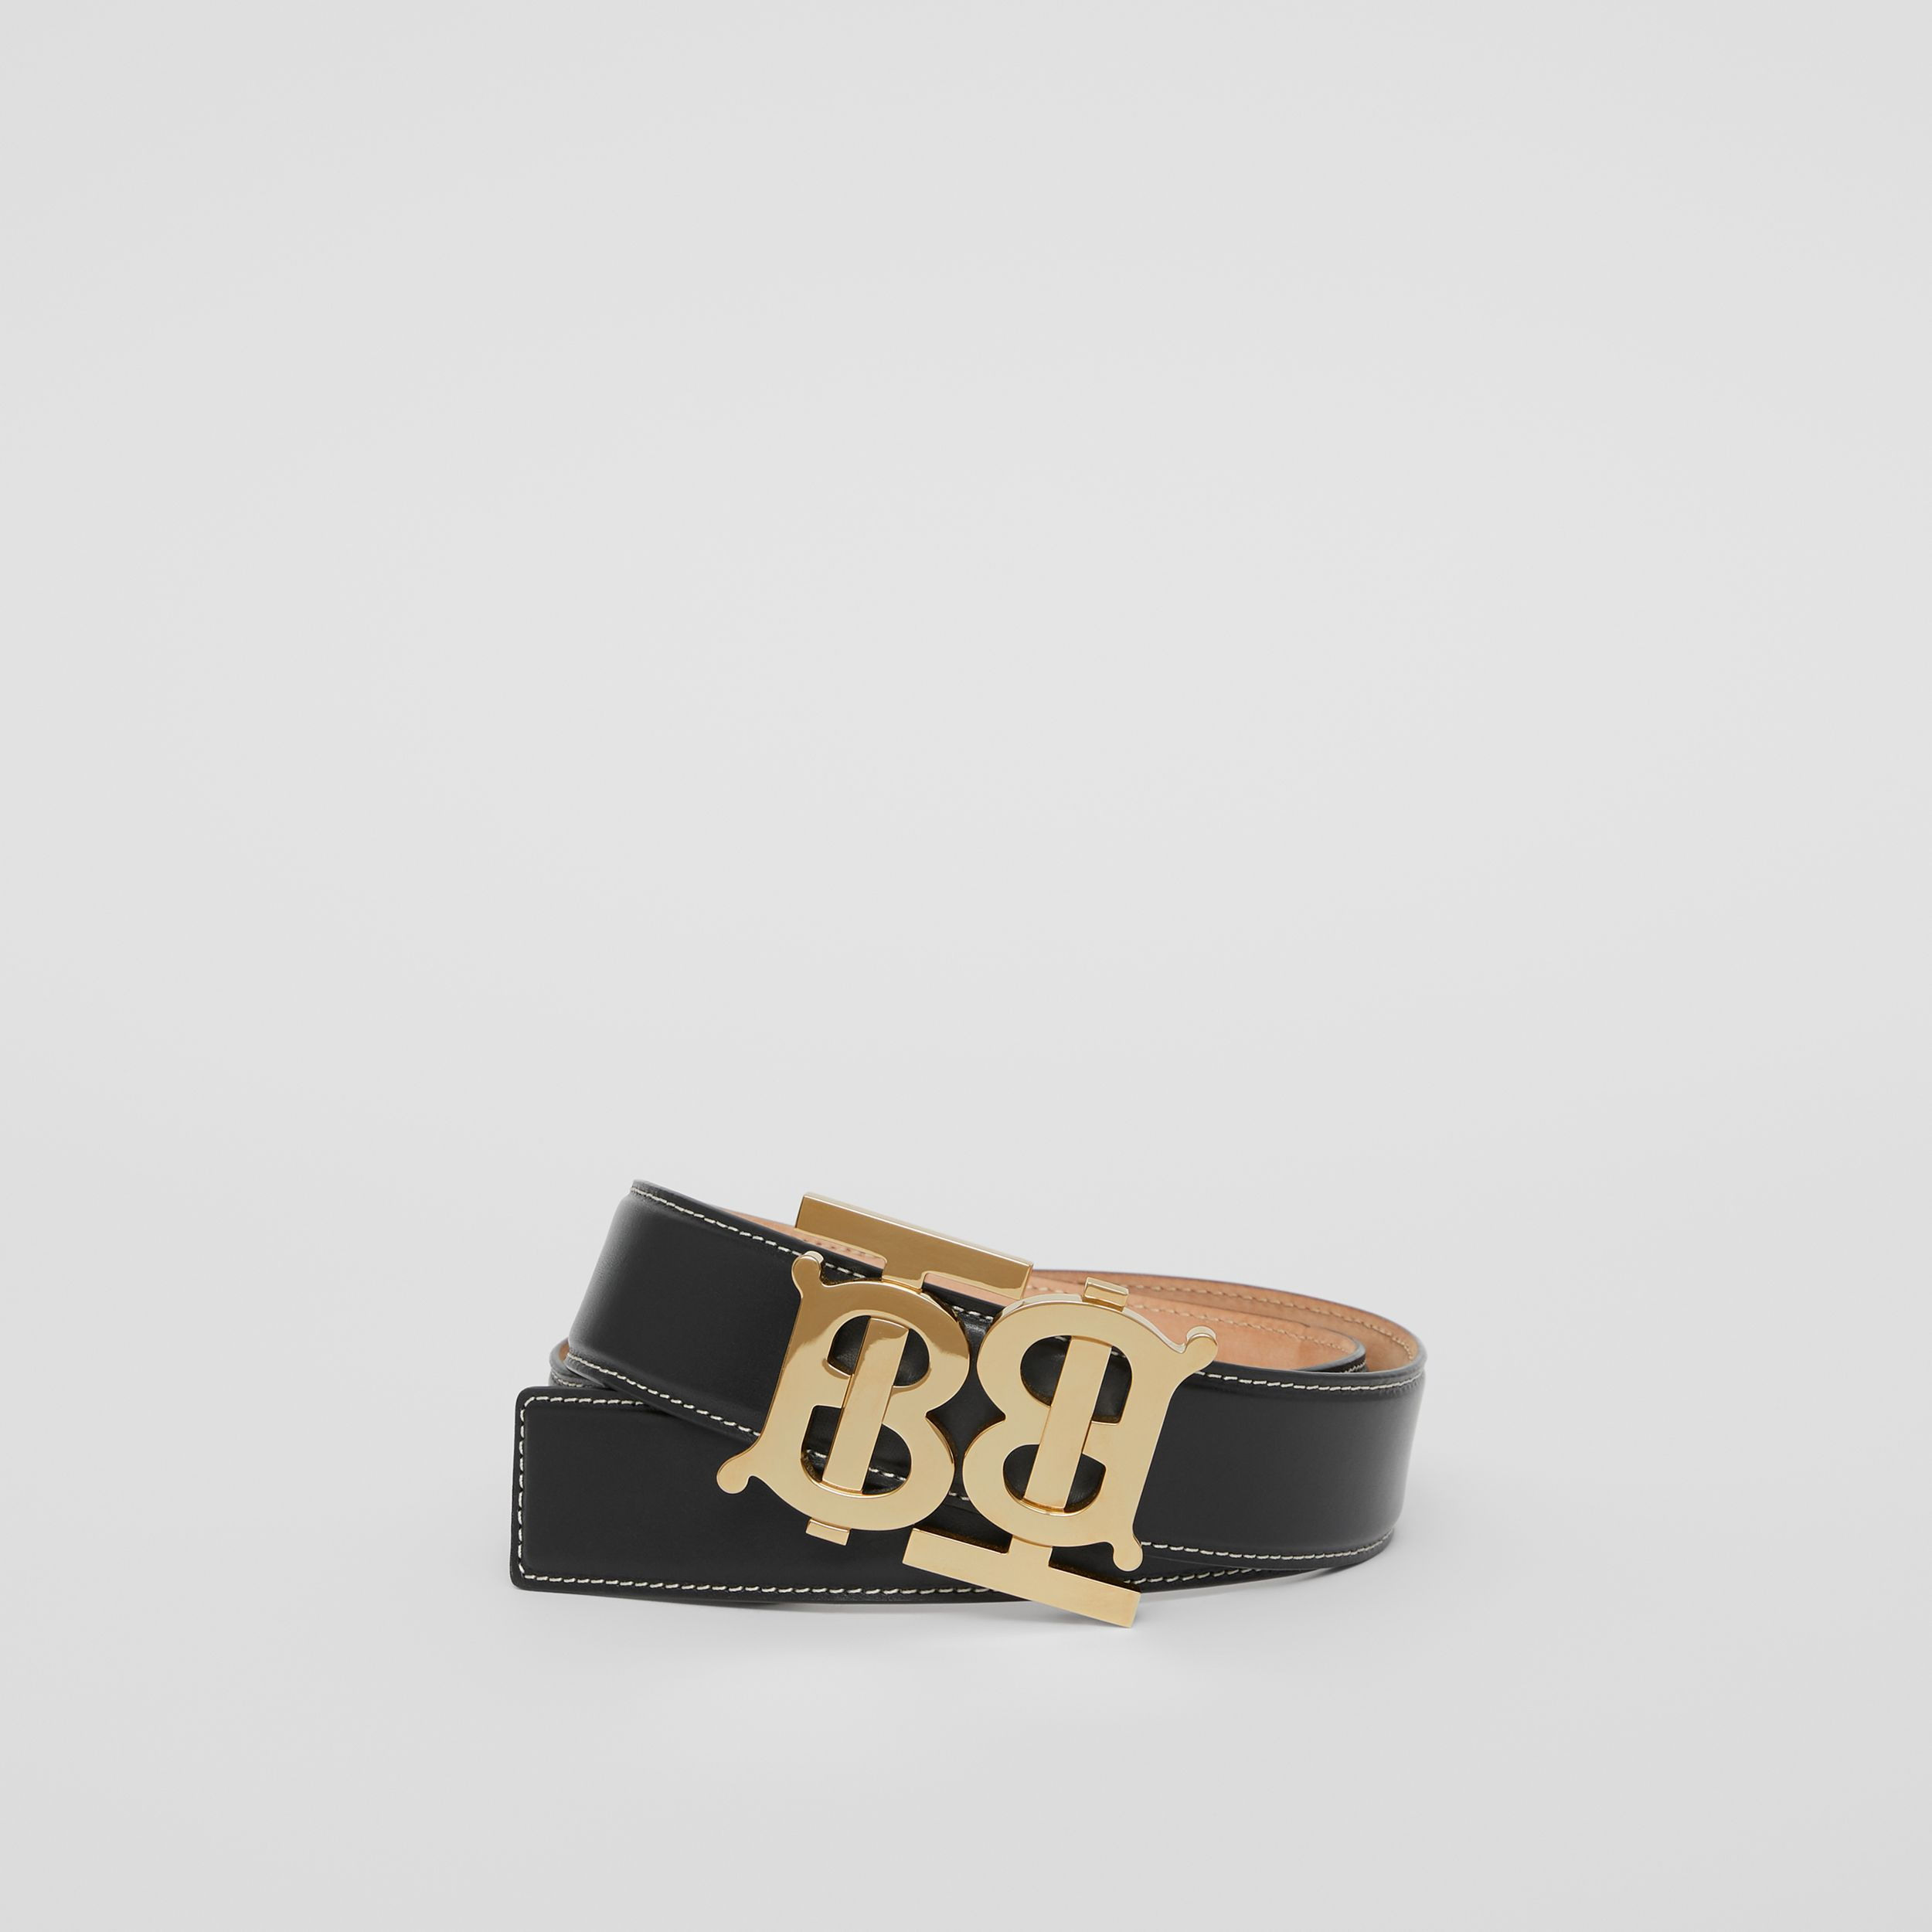 Double Monogram Motif Leather Belt in Black - Women | Burberry Australia - 1